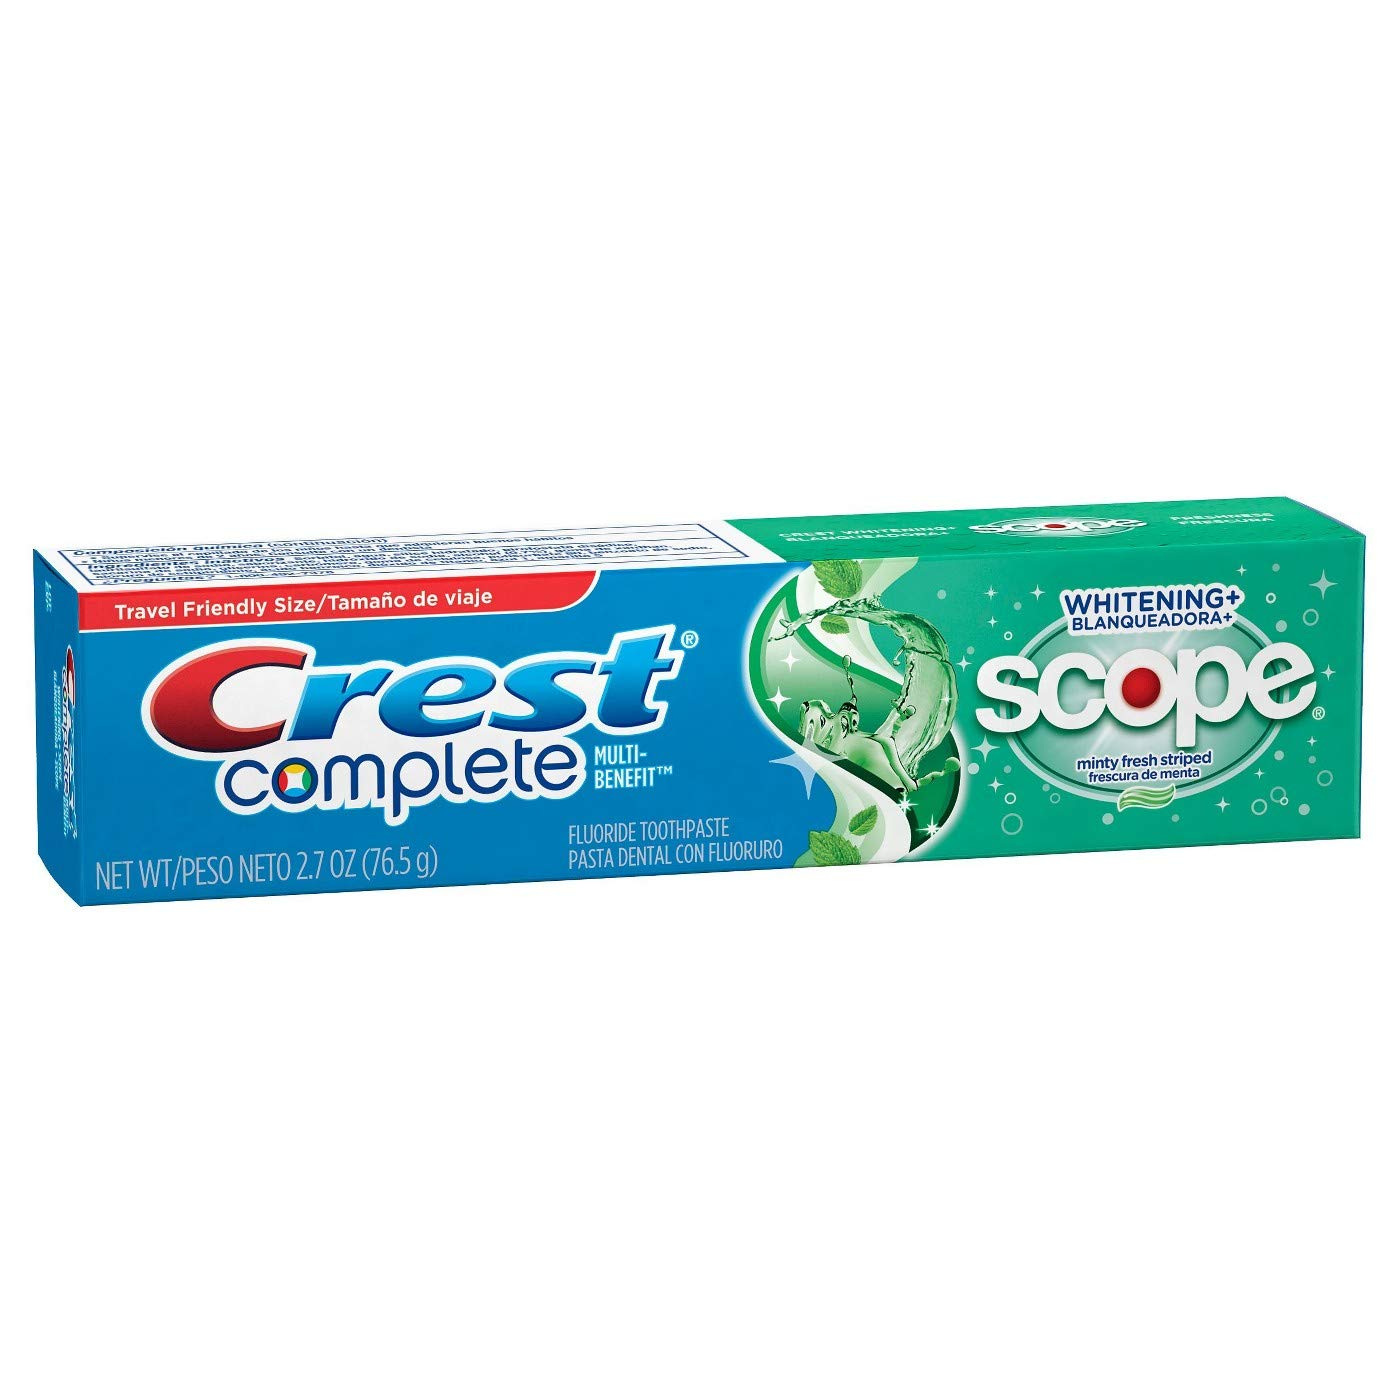 Amazon.com : Crest Whitening Plus Scope Toothpaste Minty Fresh Striped 2.70 oz (Pack of 6) : Beauty